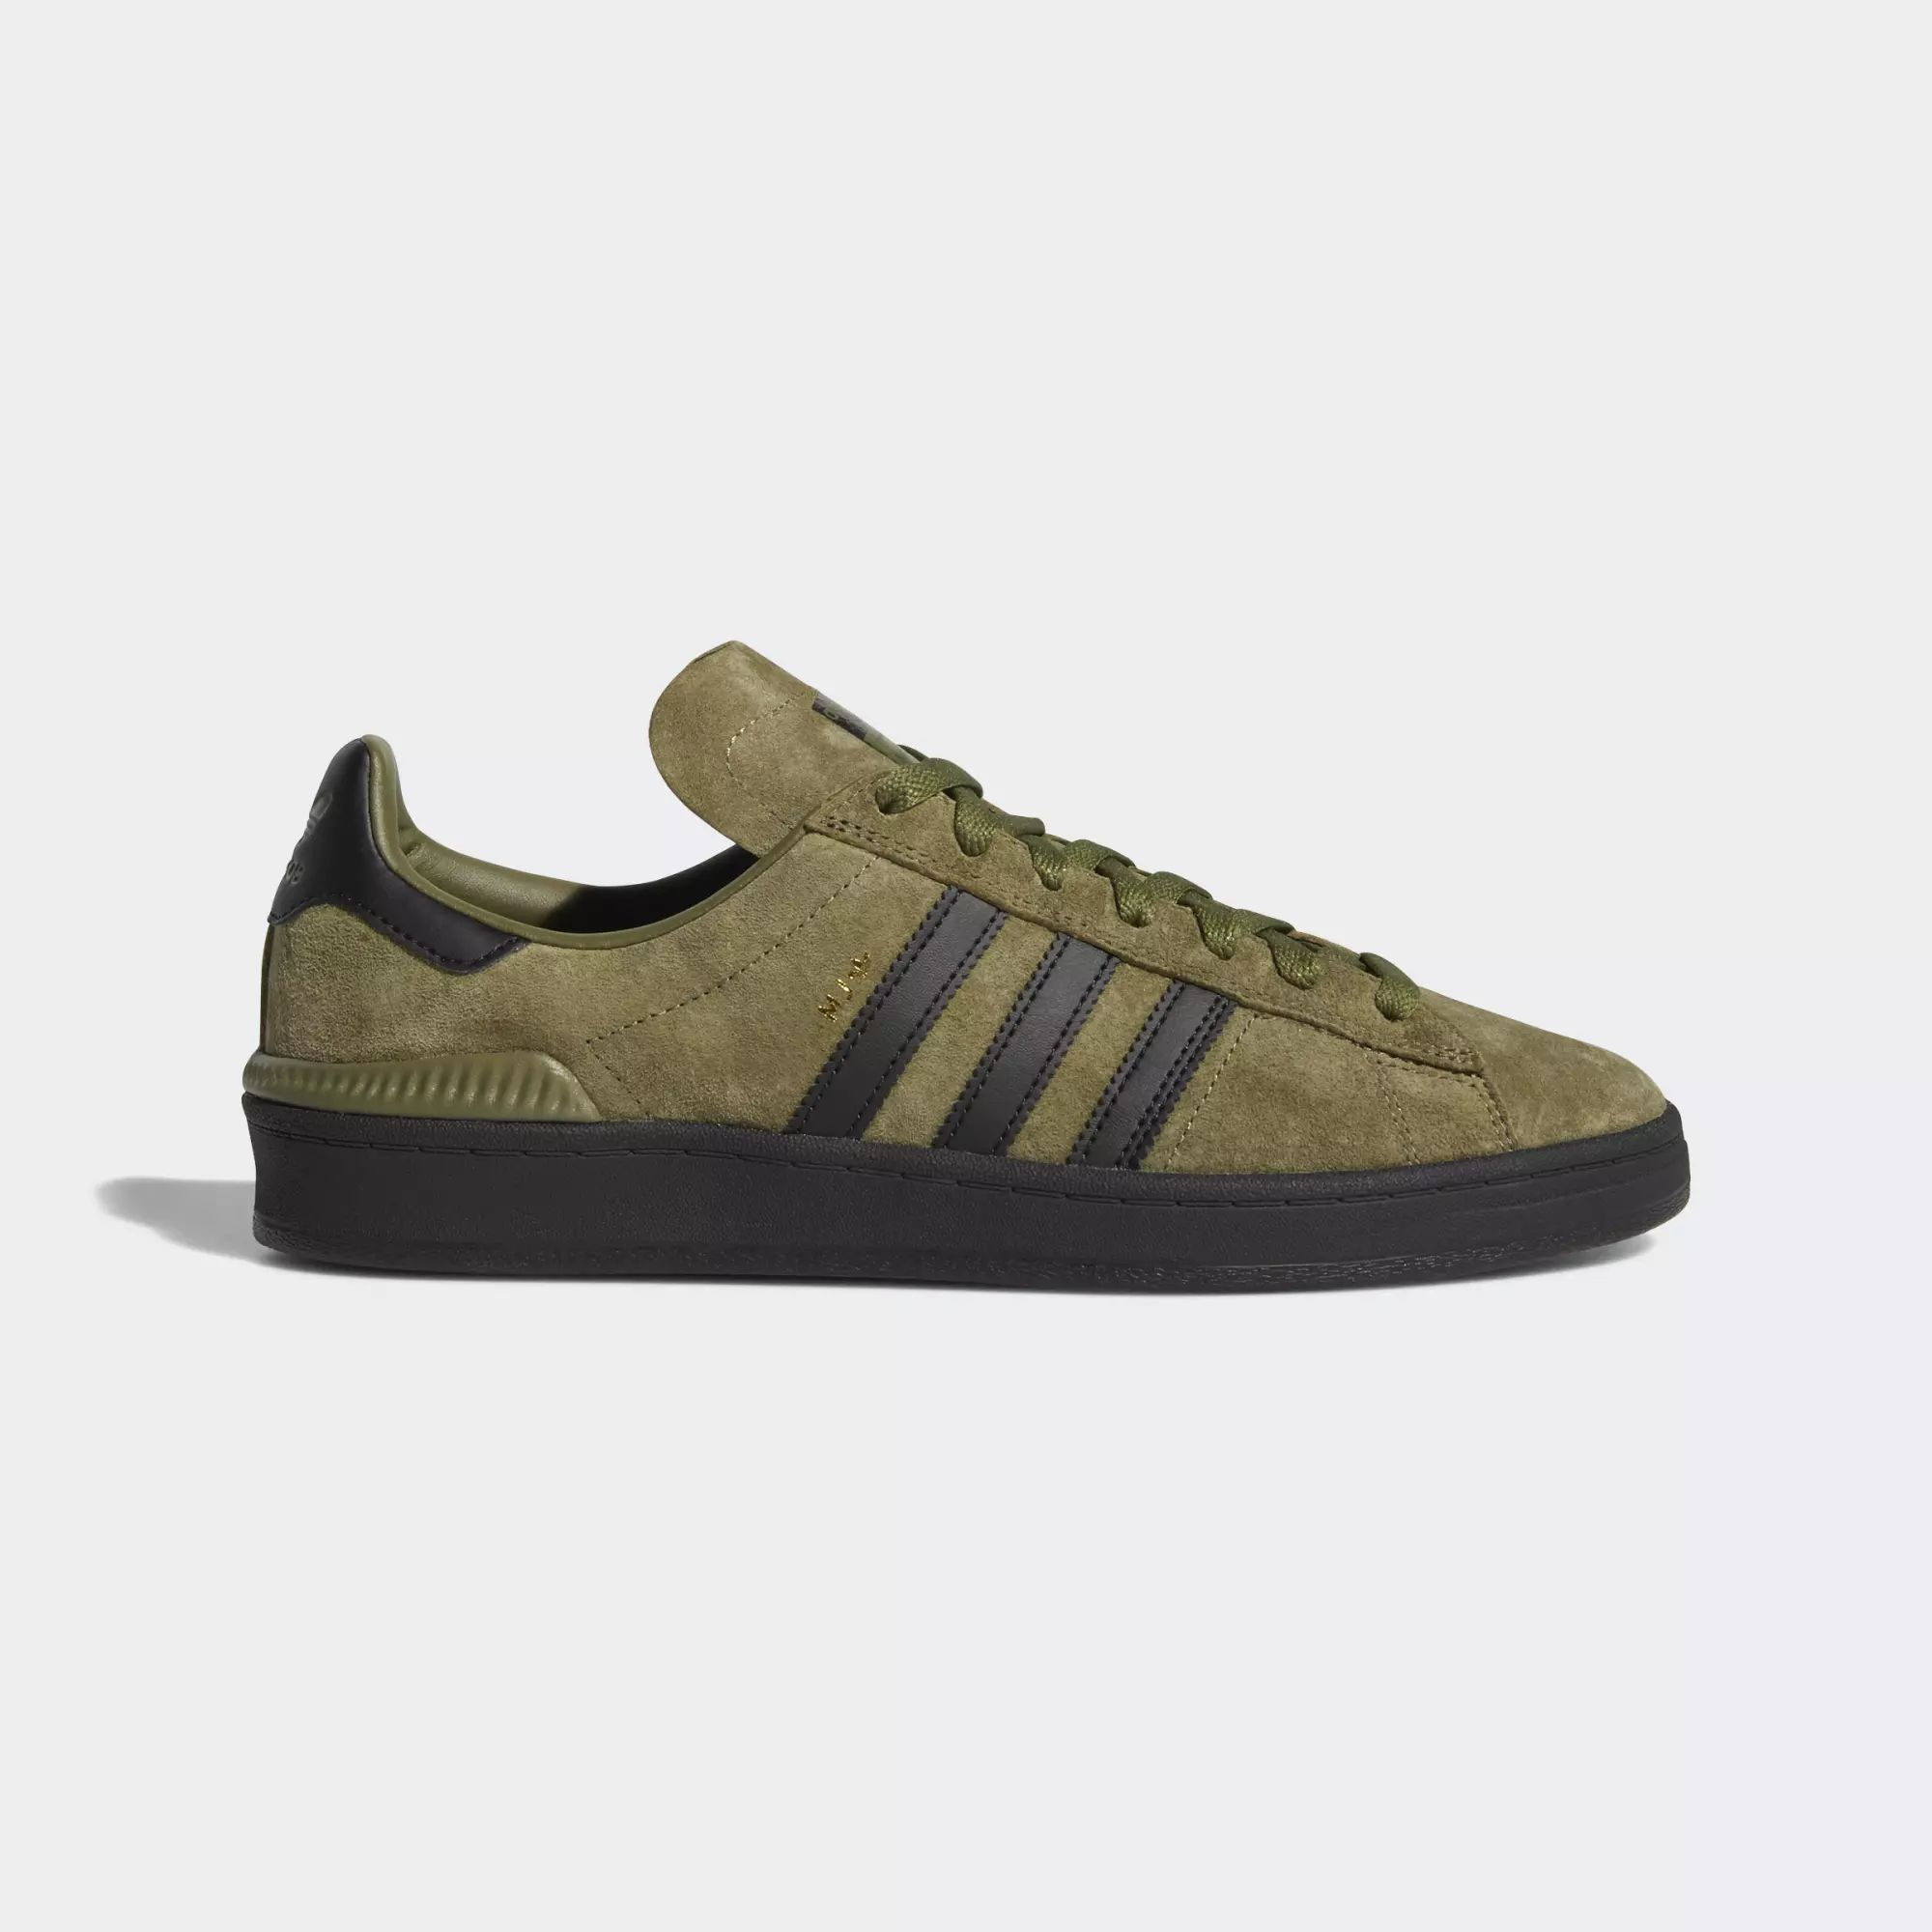 Adidas Campus ADV Shoes - Olive Cargo / Core Black / Gold Met